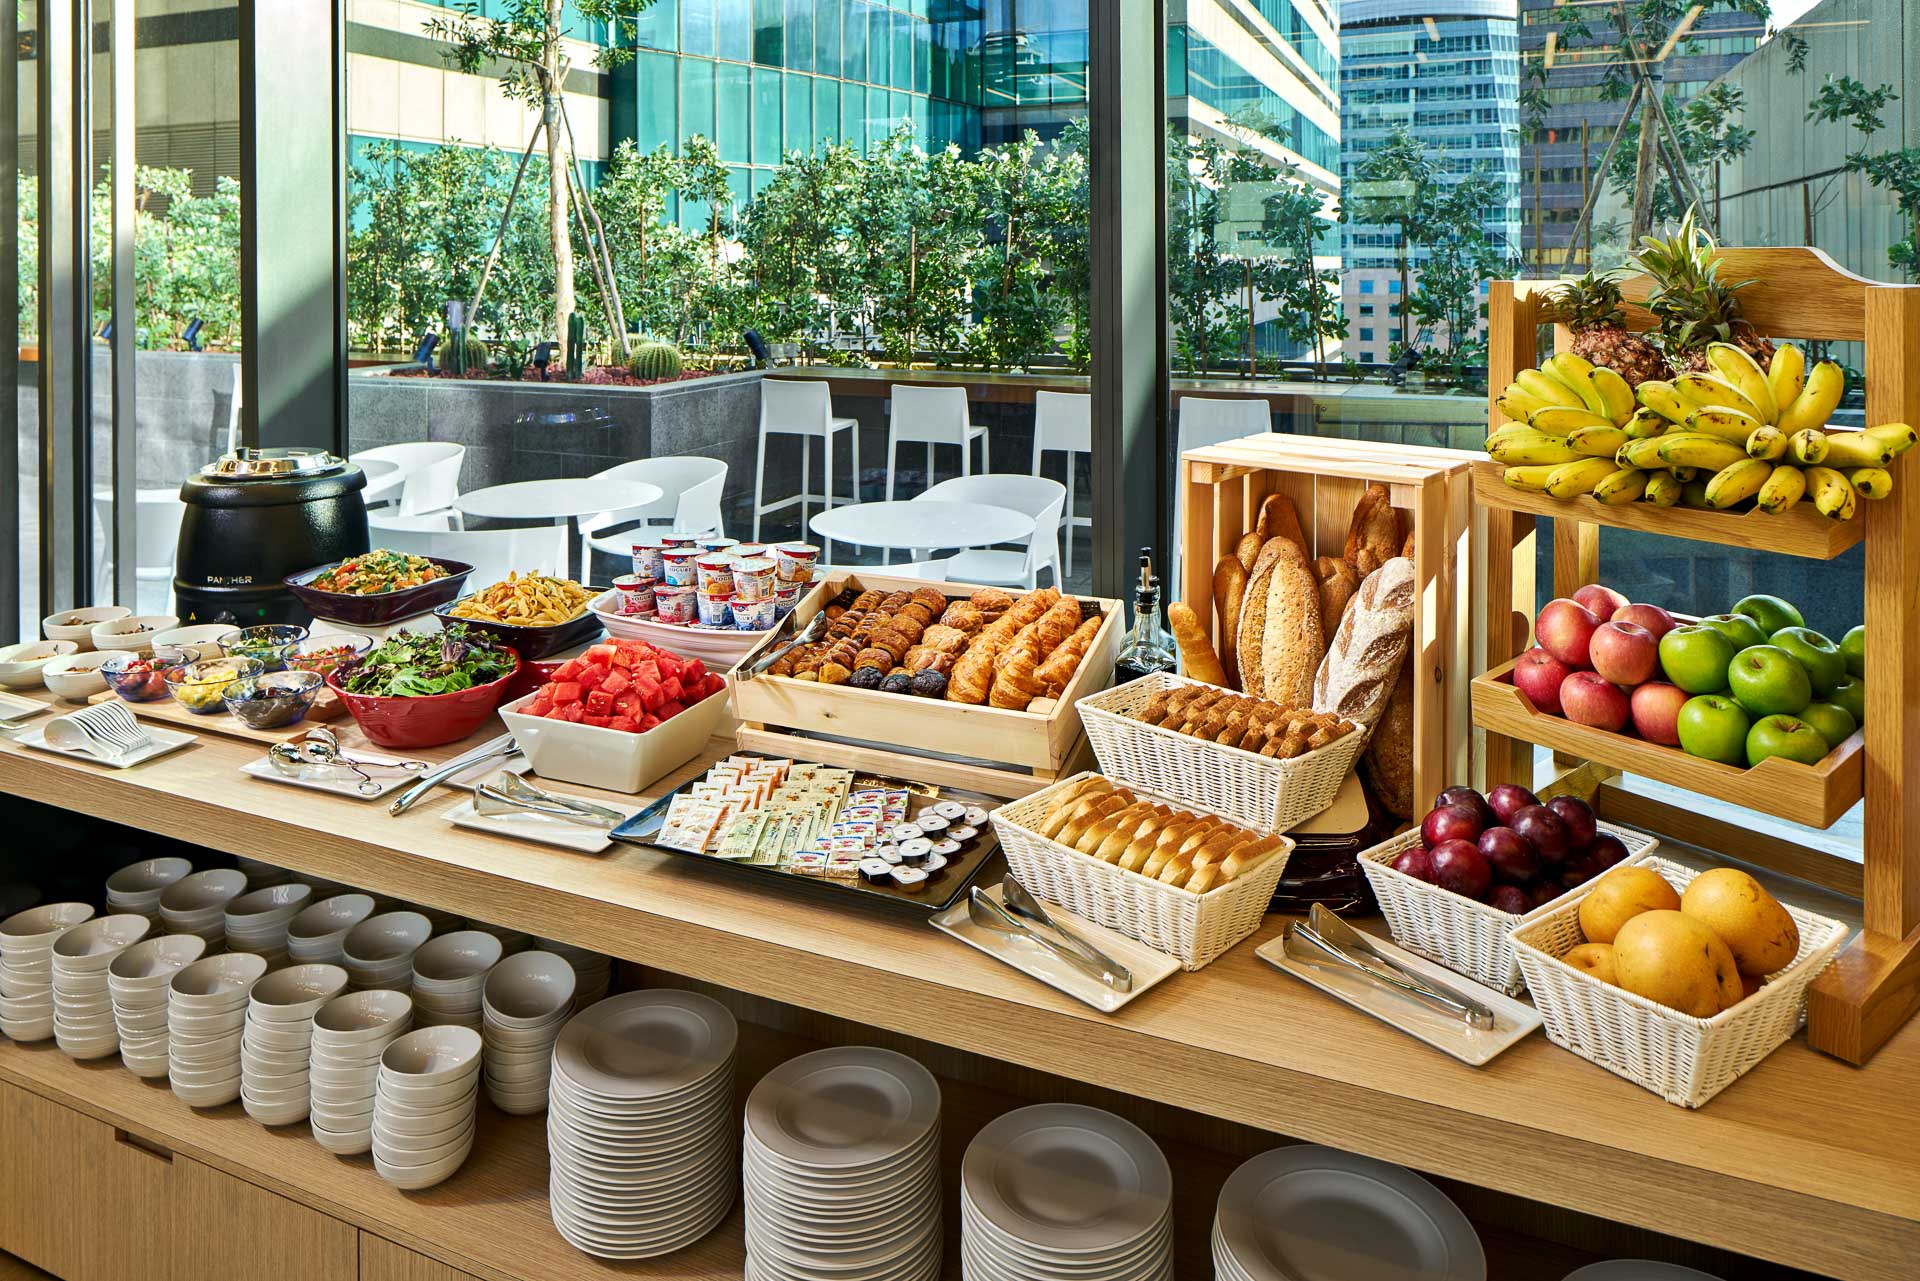 breakfast setup close up interior photography at yotel in singapore